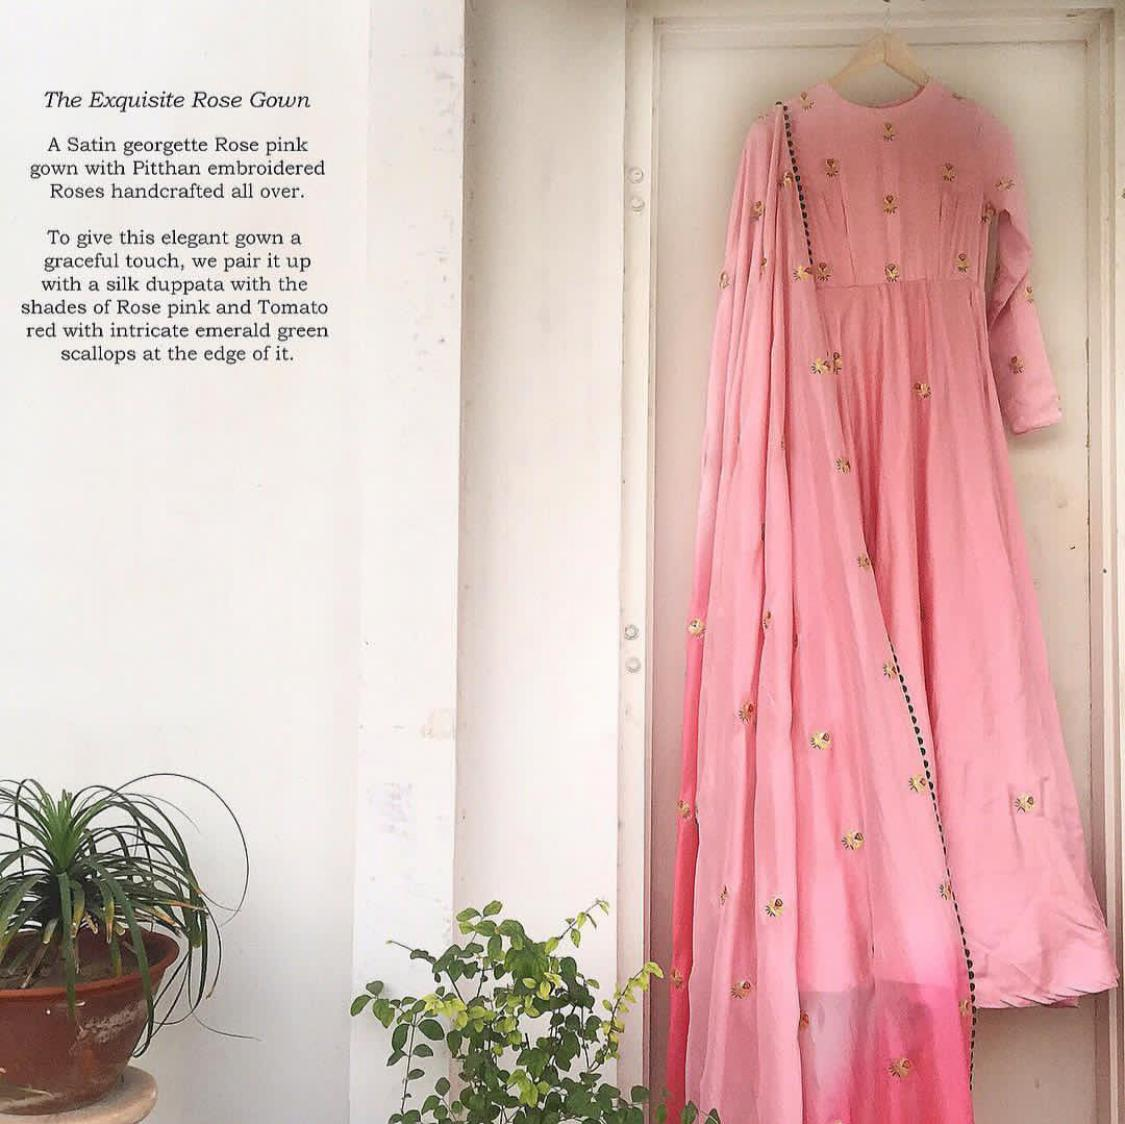 The Exquisite Rose gown